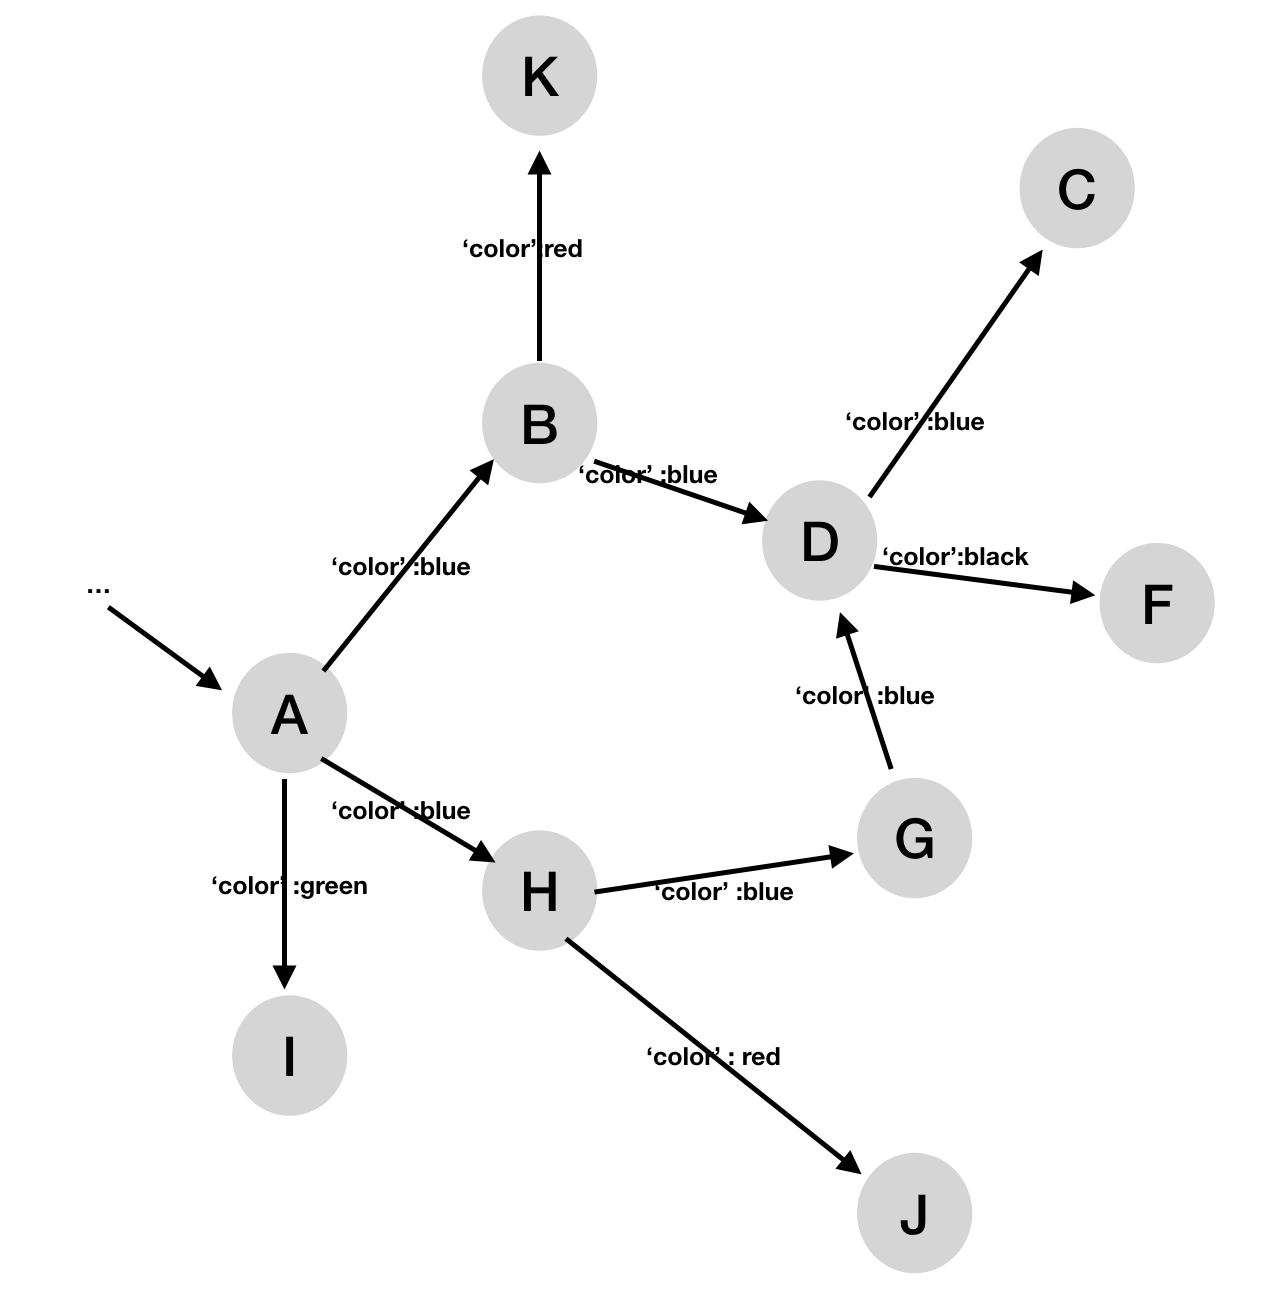 Traverse through graph based on edge's properties values